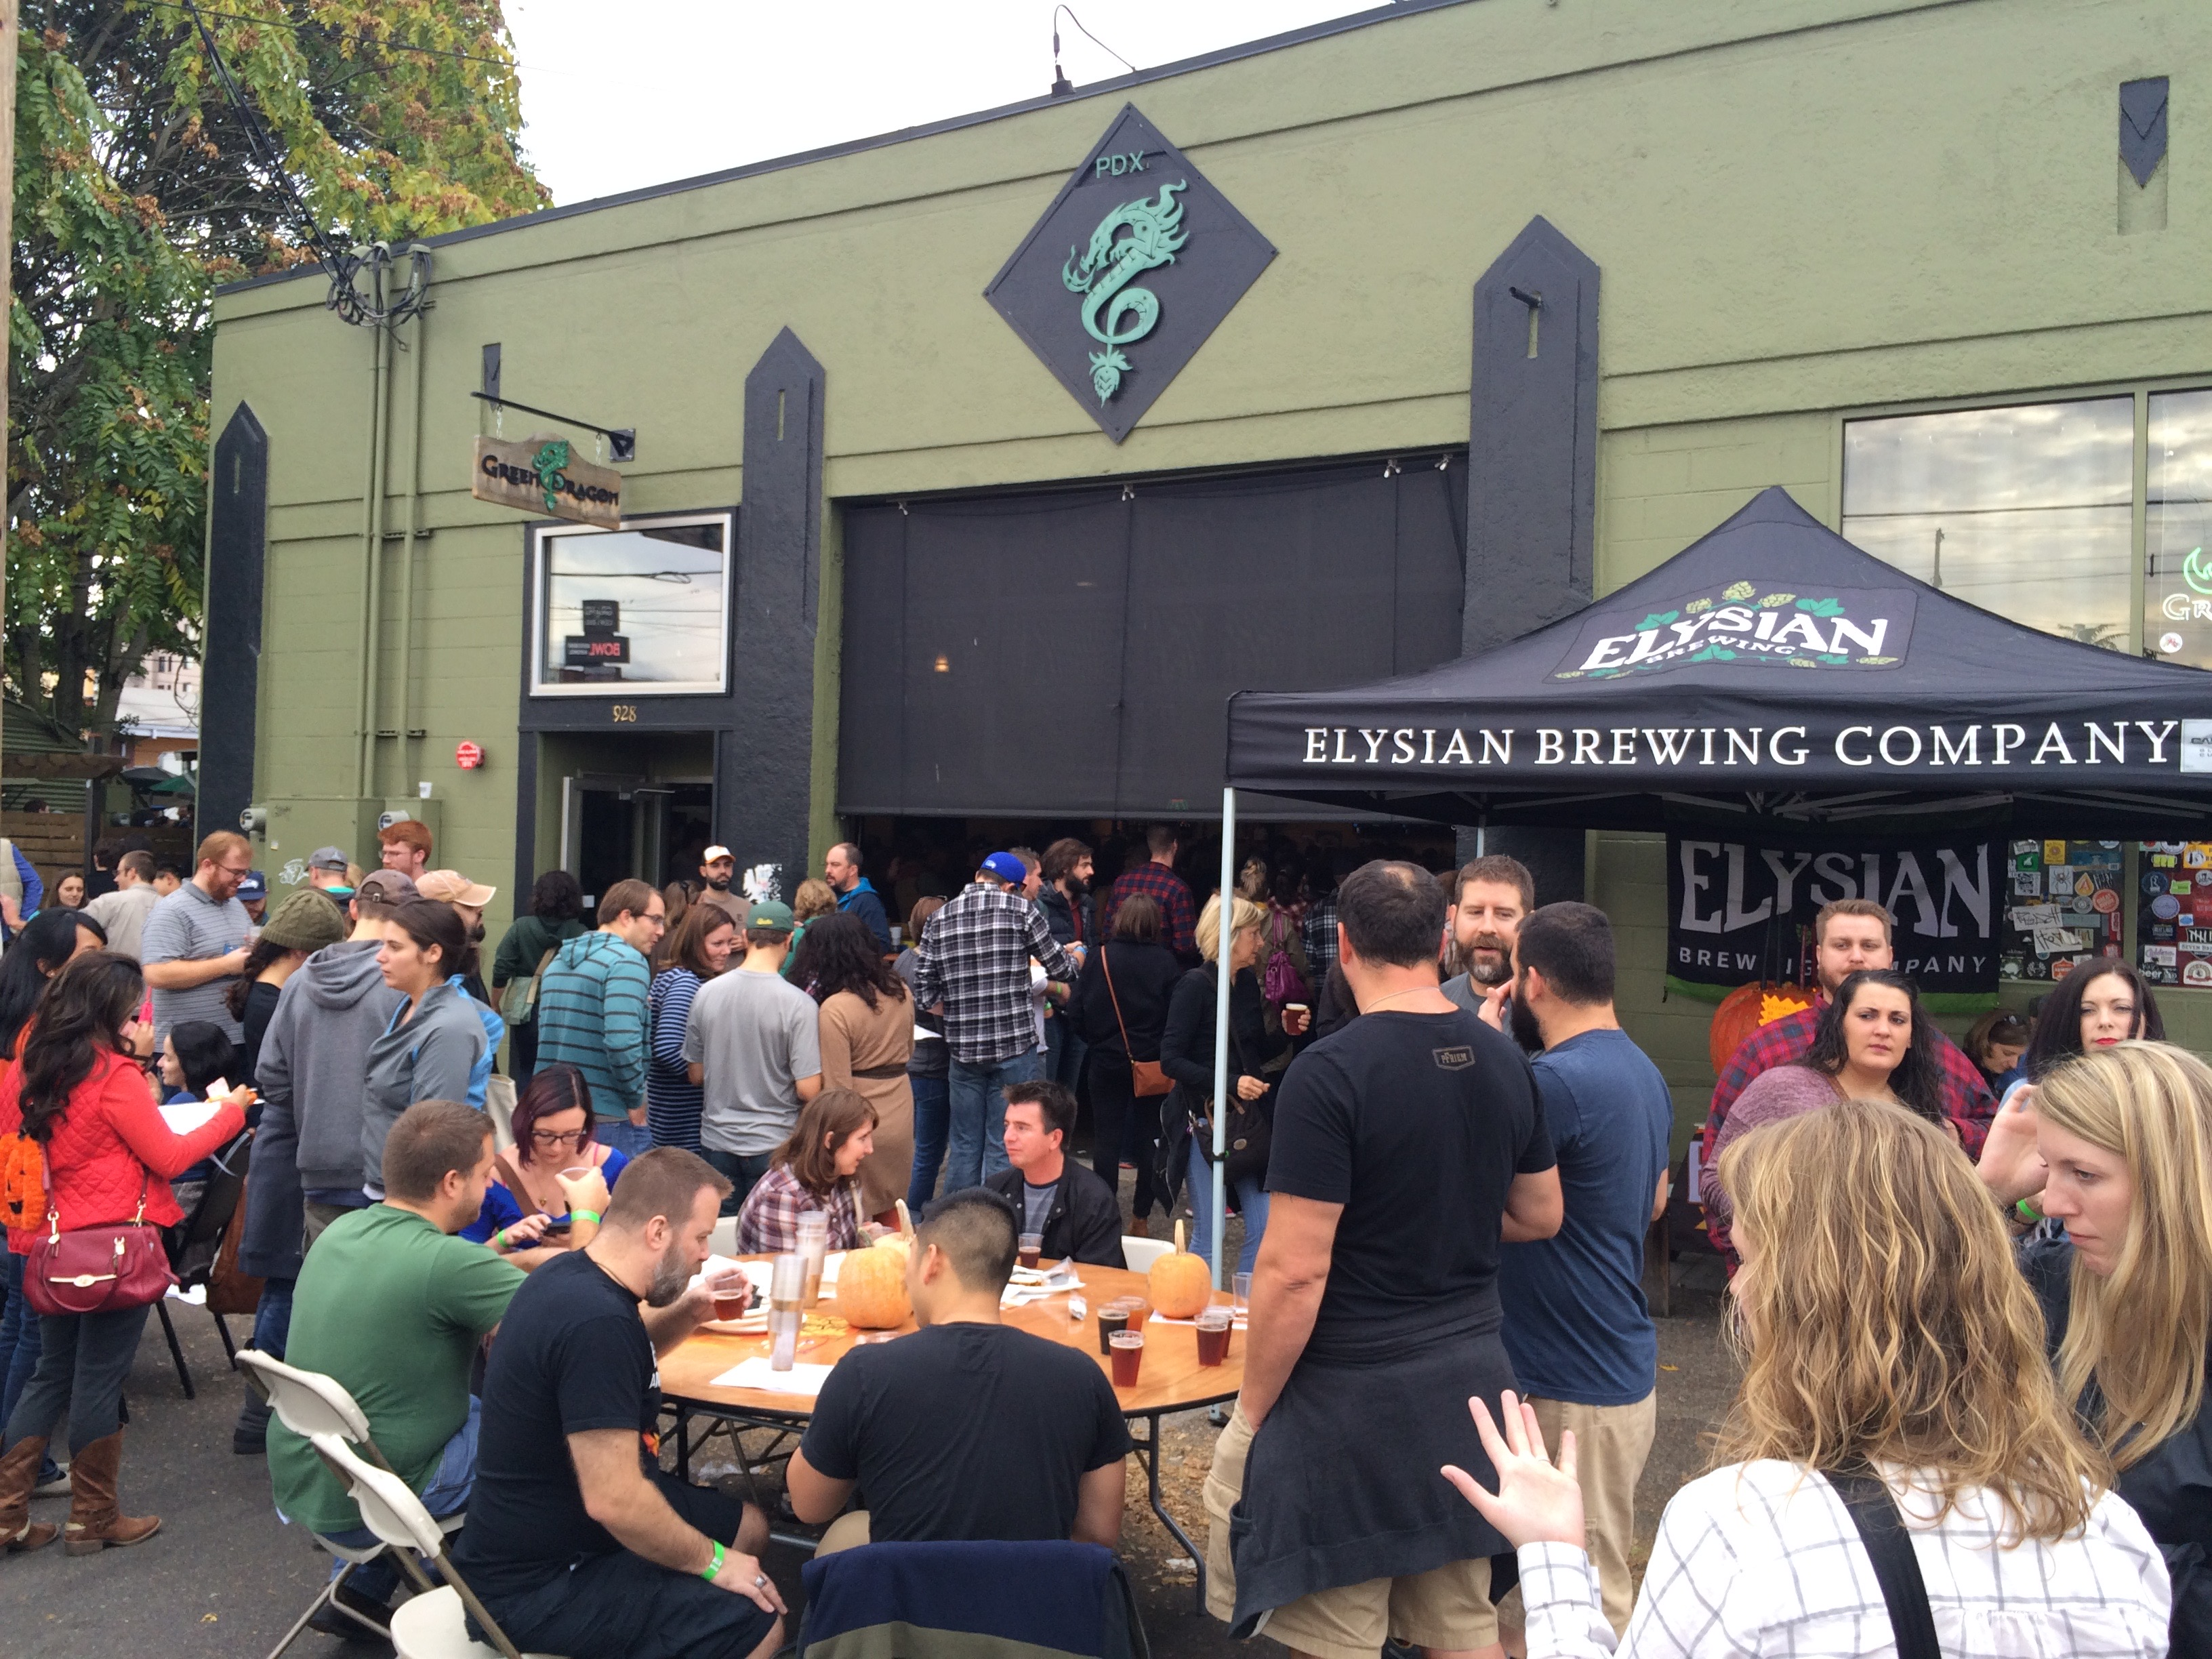 The outside area at Green Dragon at the 2015 Killer Pumpkin Festival during Killer Beer Week.